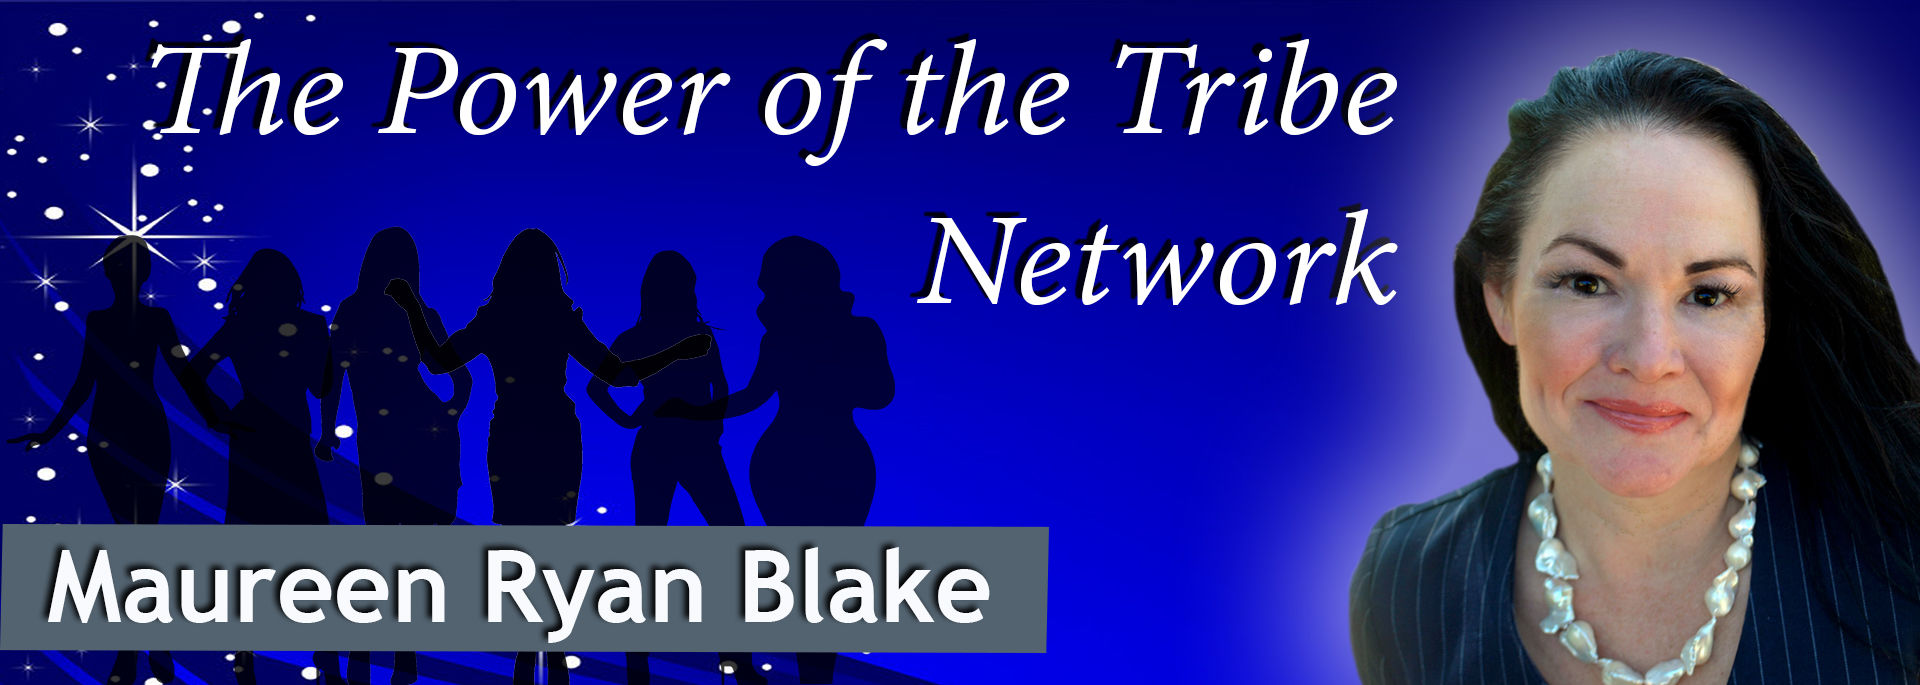 The Power of the Tribe Network